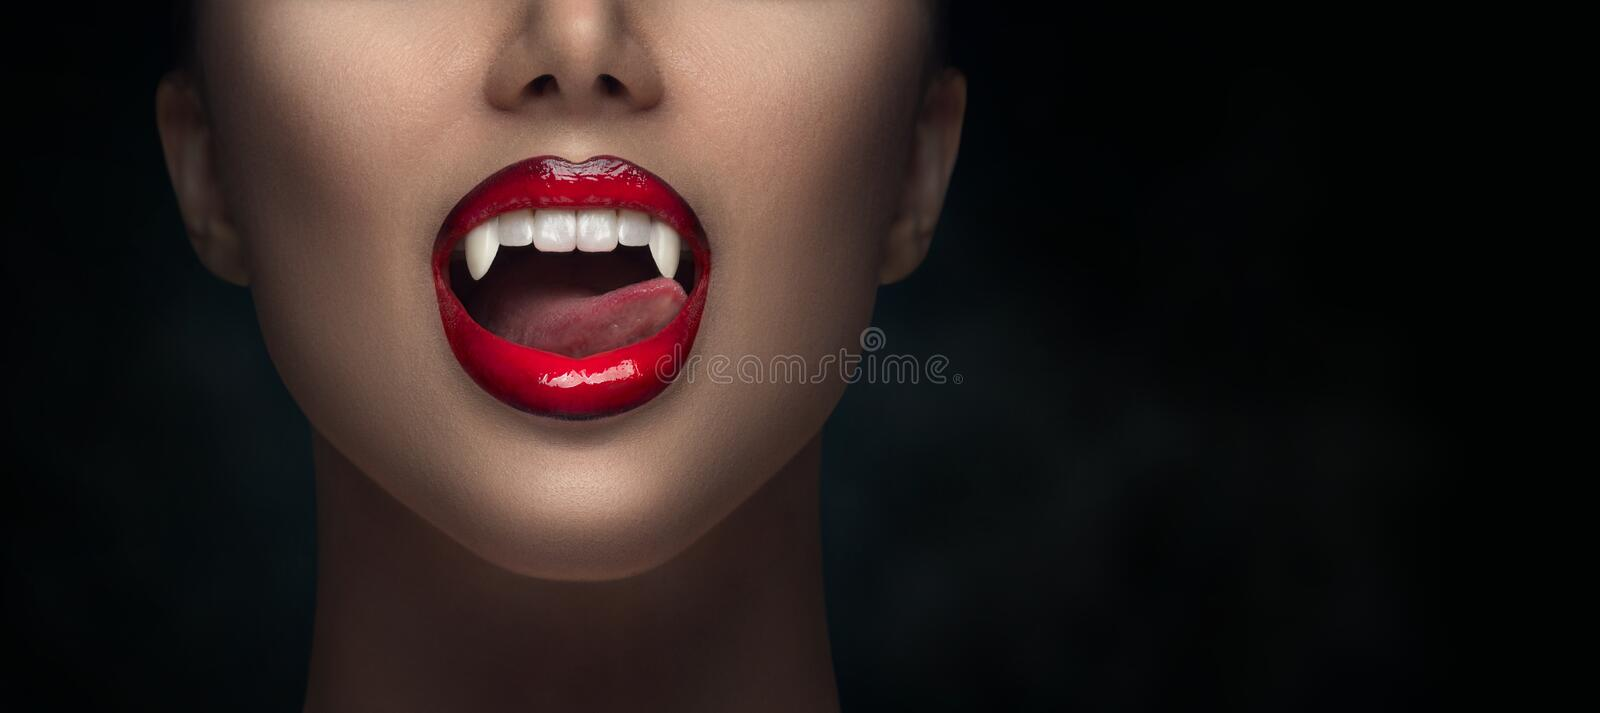 Sexy Vampire Woman's rode lippen close-up Vampiermeisje likt met tong Fashion Glamor Halloween-kunstontwerp stock fotografie